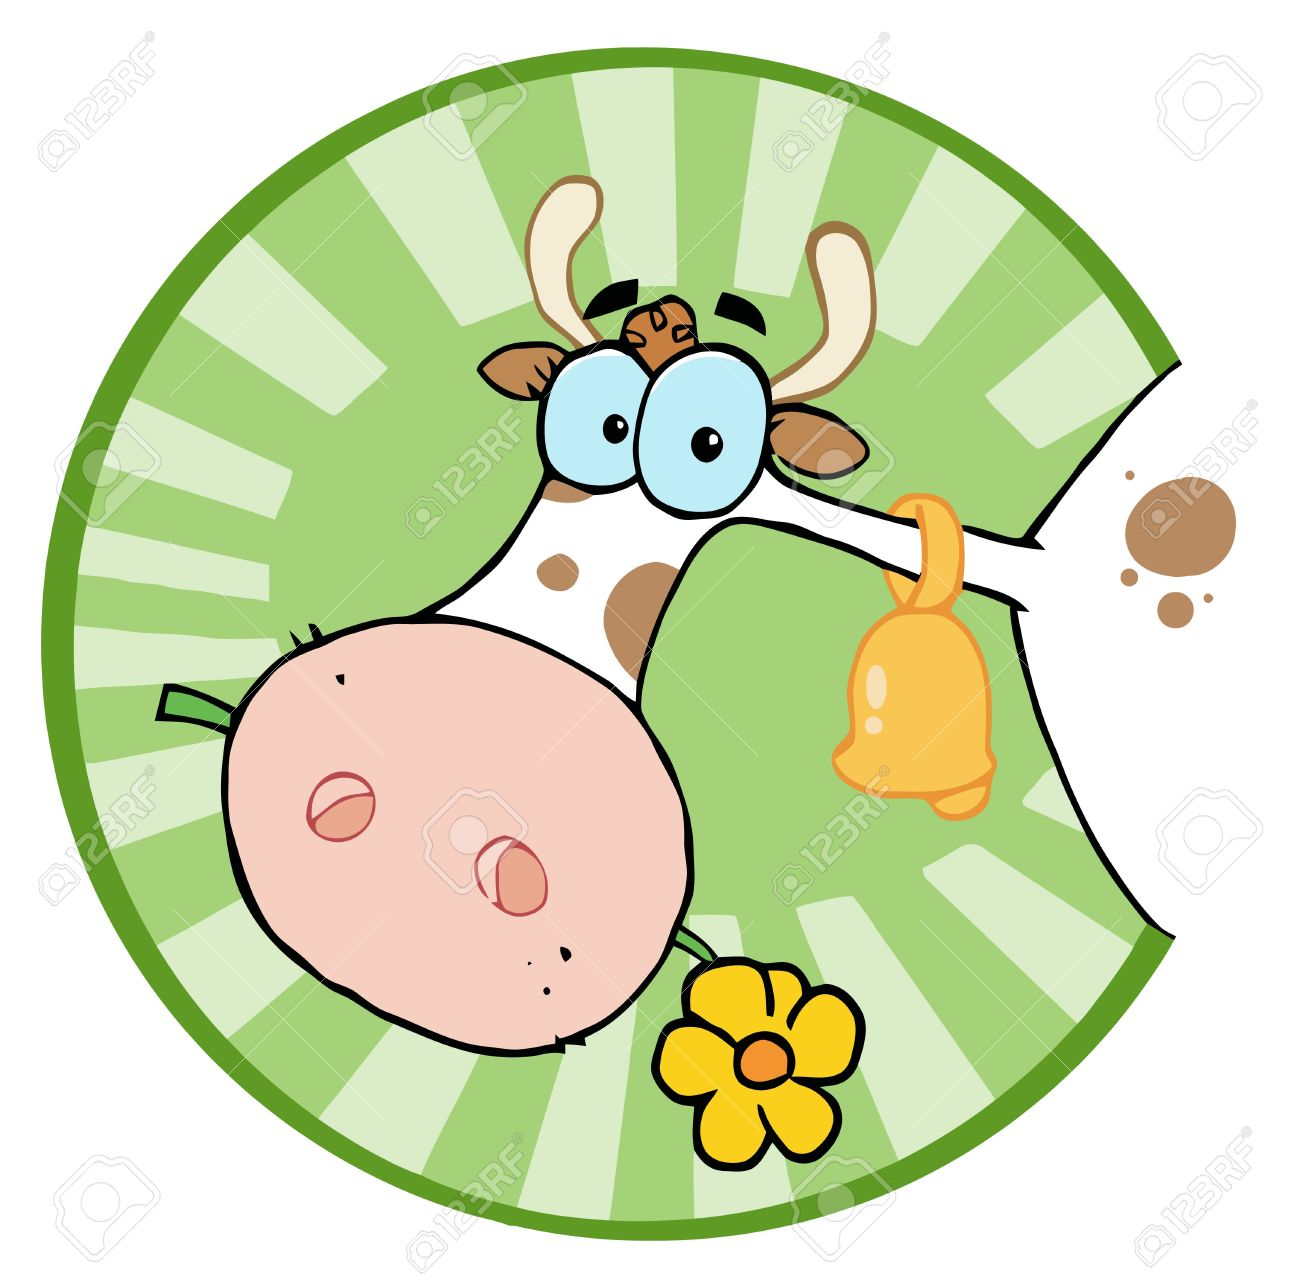 hight resolution of clipart illustration farm cow head chewing on a flower stock vector 6792592